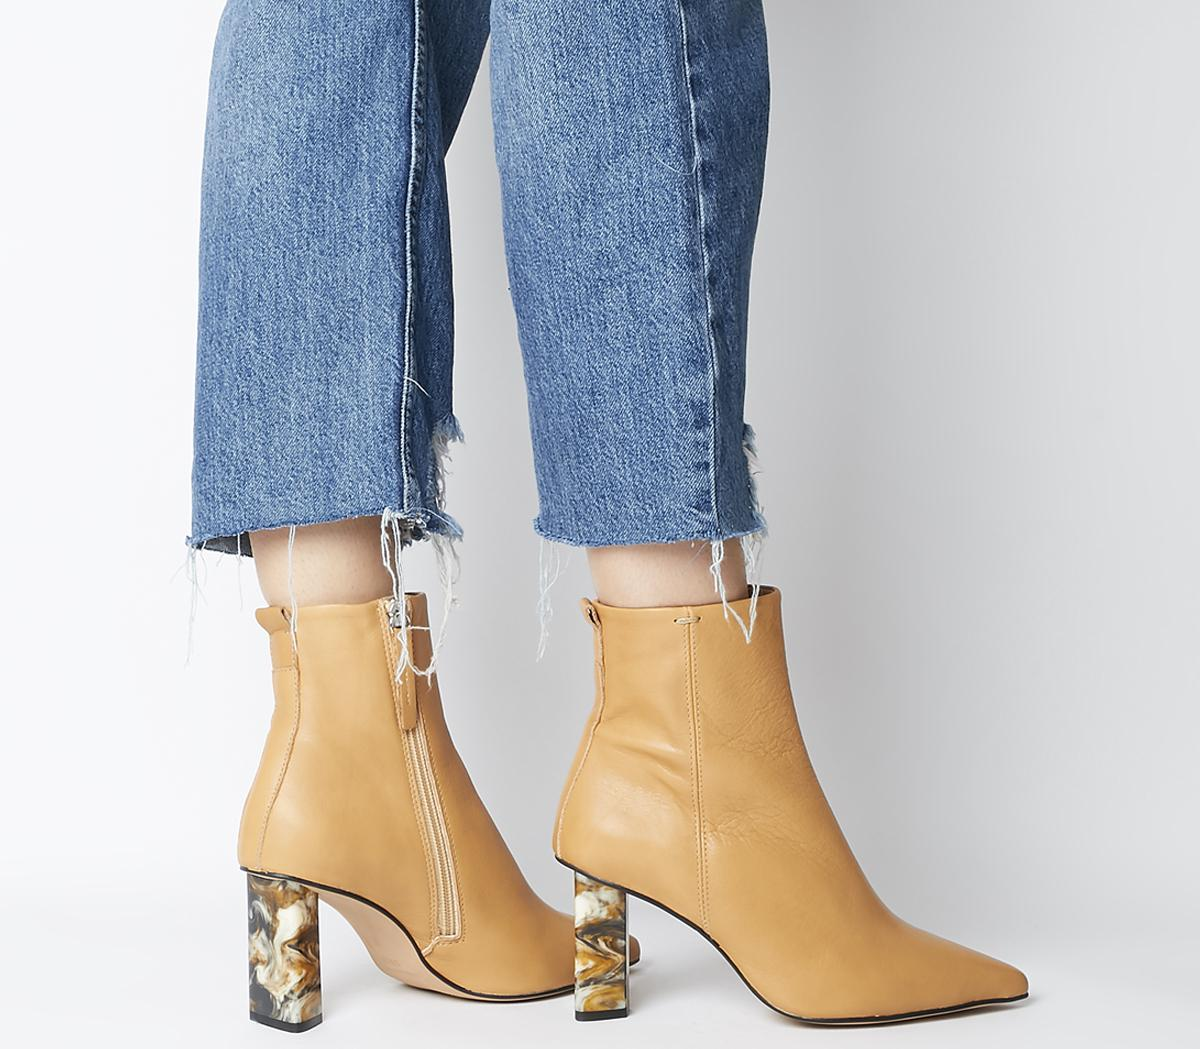 Attention High Feature Heel Boots